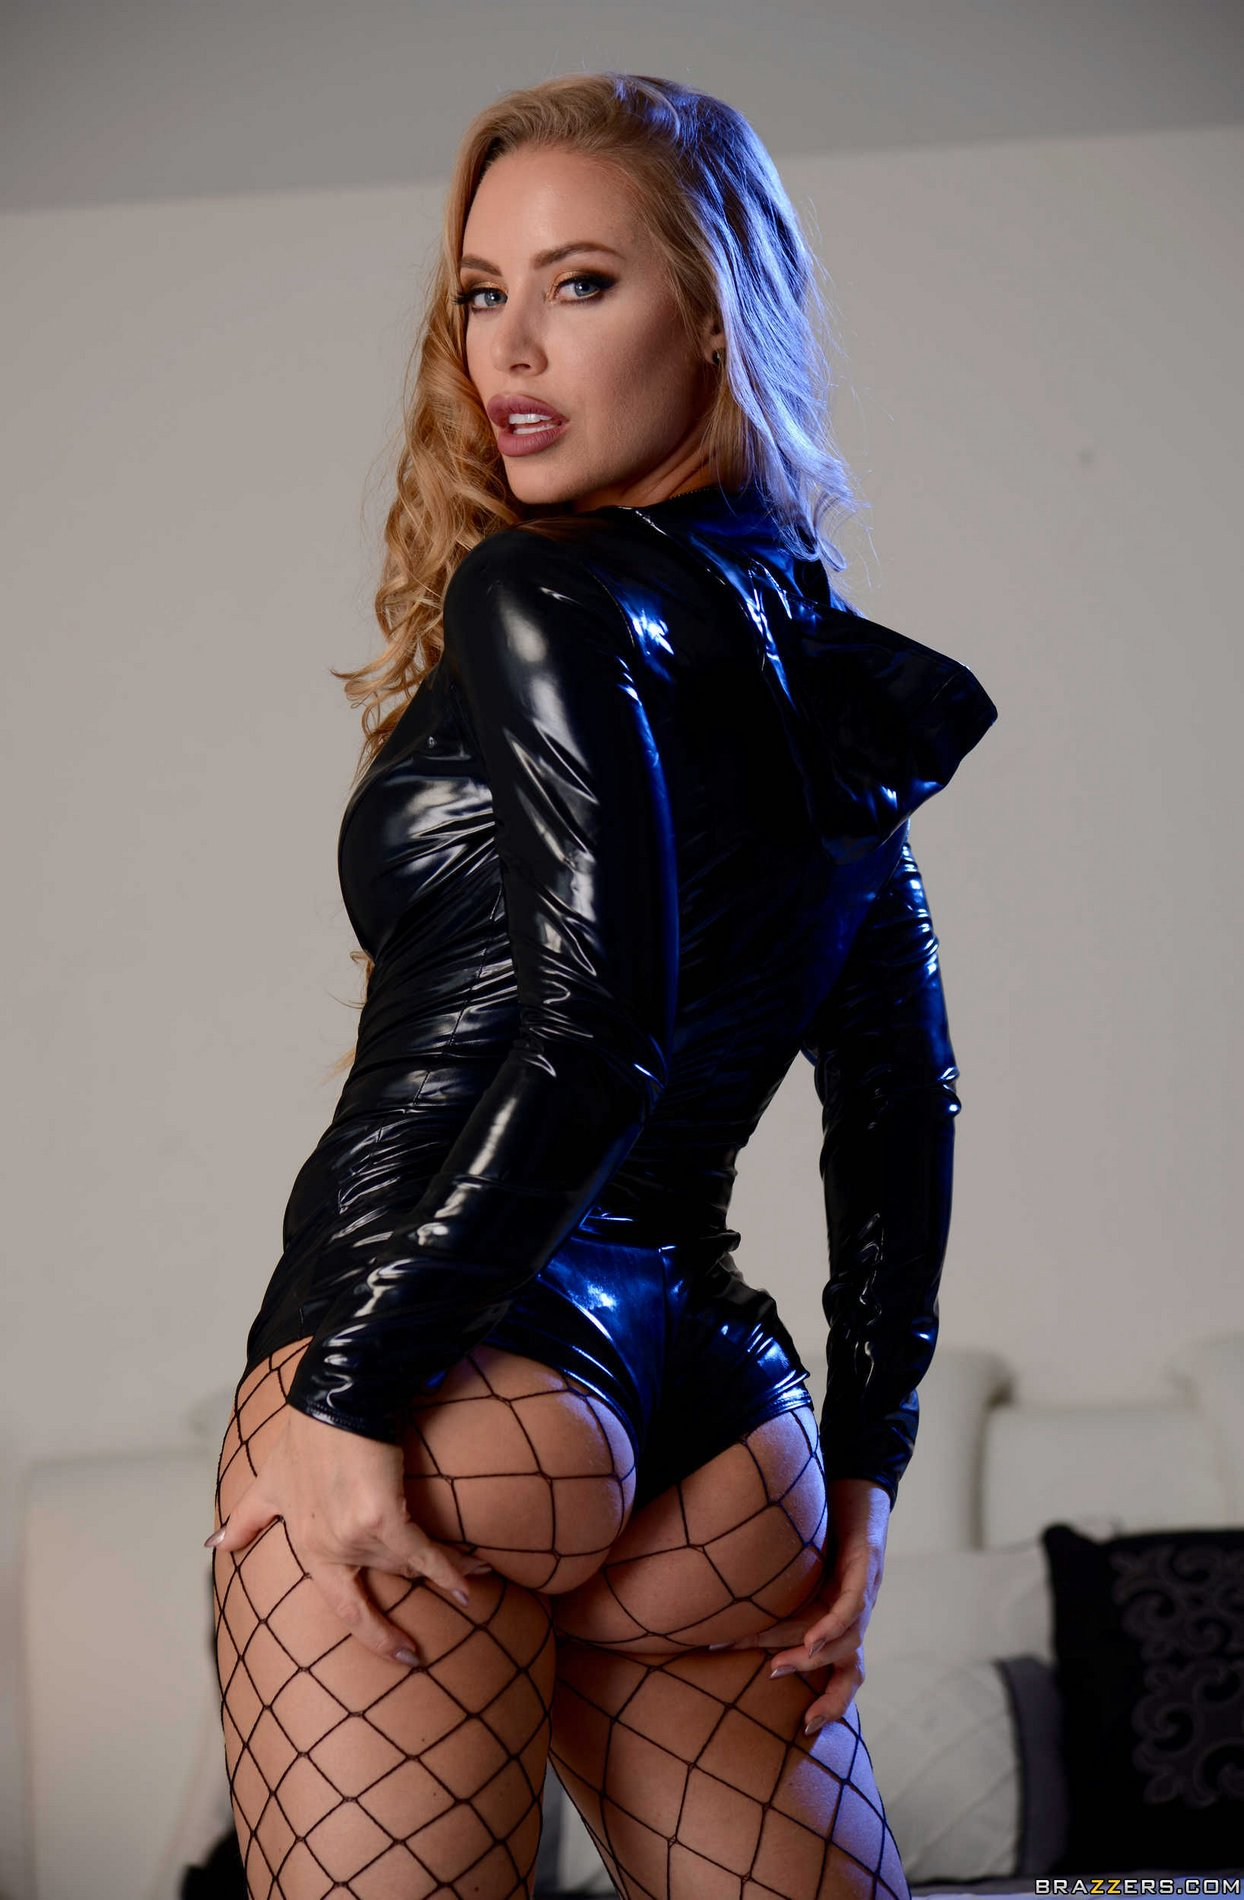 Nicole Aniston in latex outfit, fishnet stockings and ...